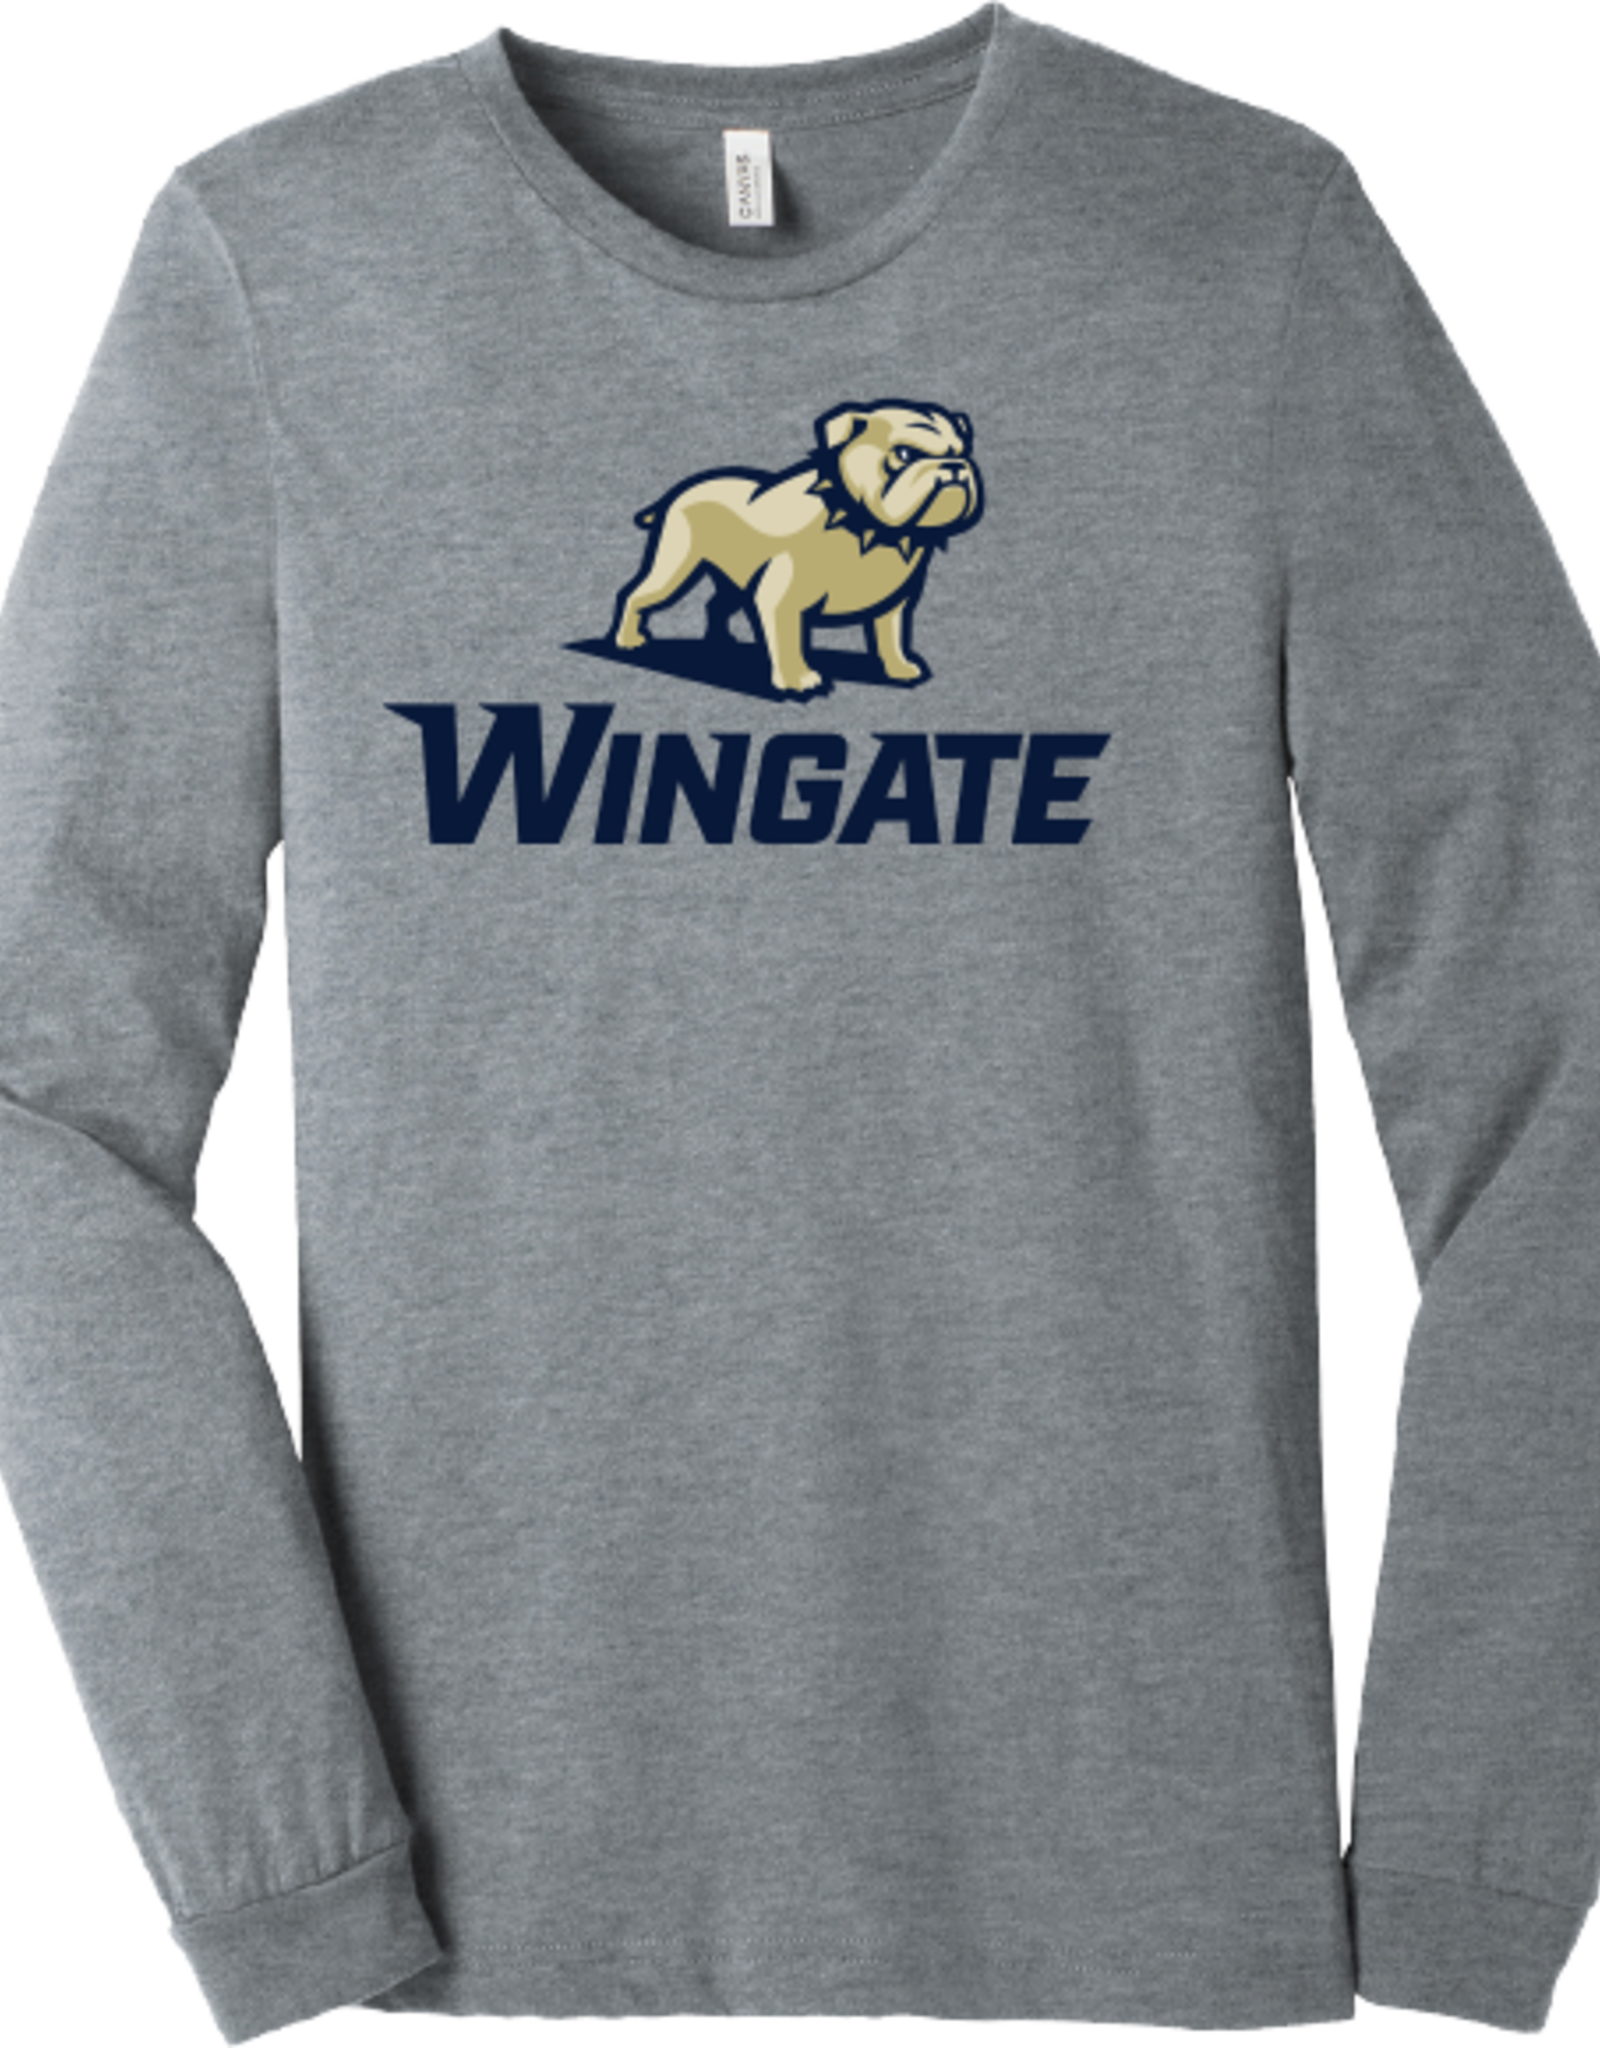 Bella + Canvas Grey New Full Standing Dog Over Wingate LS Tee